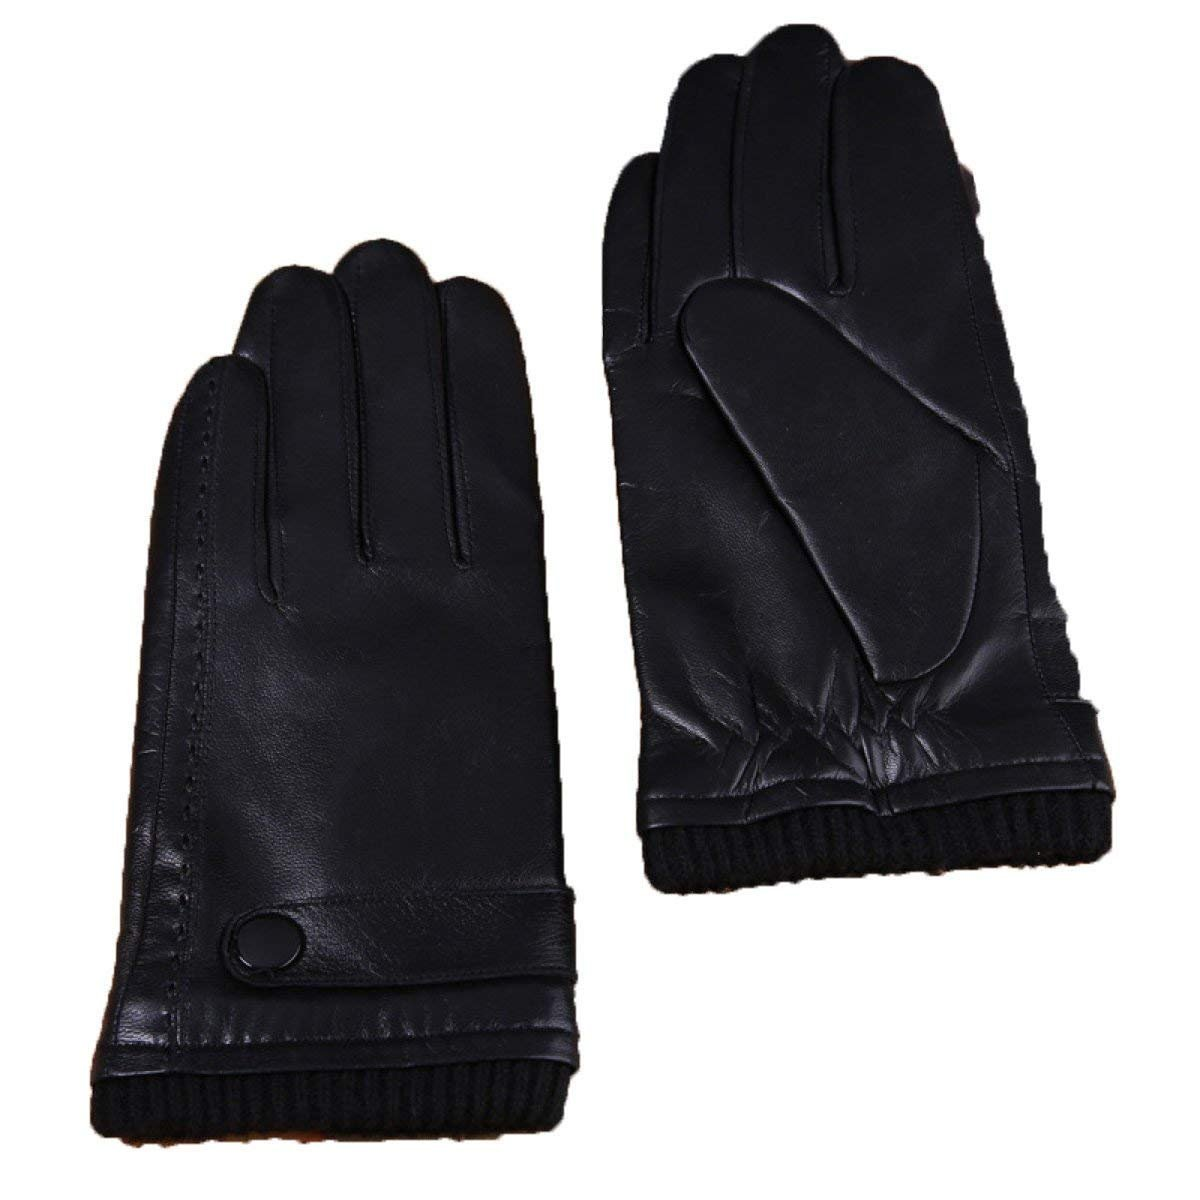 CWJ Gloves Men Warm Driving Business Touch Screen Touch Screen,Black,X-Large